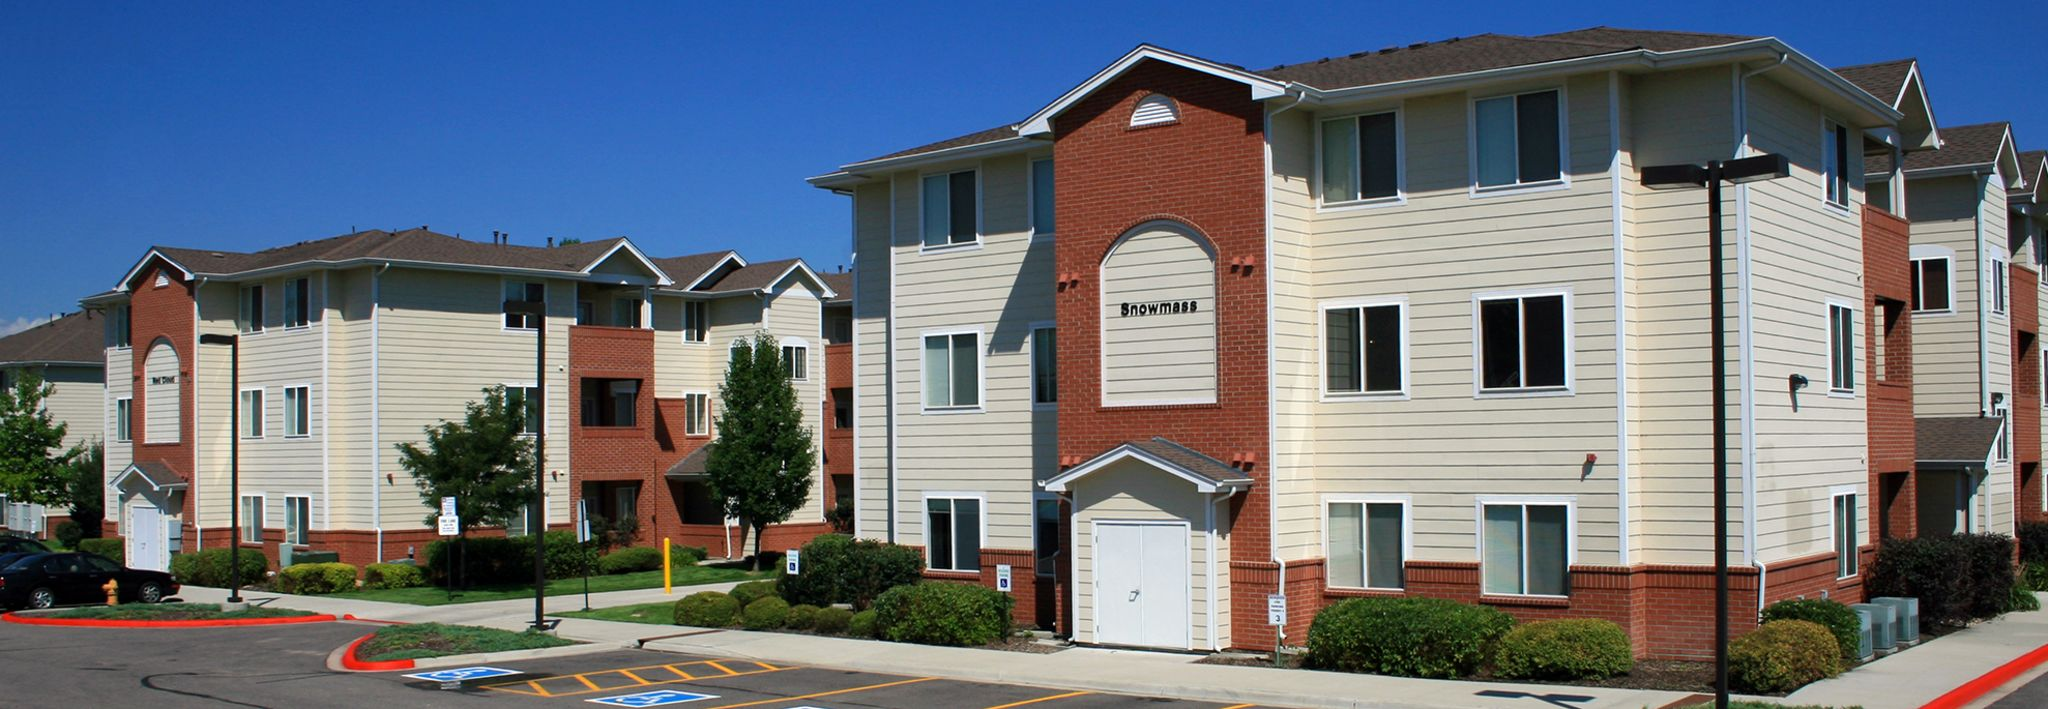 The Peaks Apartments are located near the CCU campus in Lakewood, Colorado.